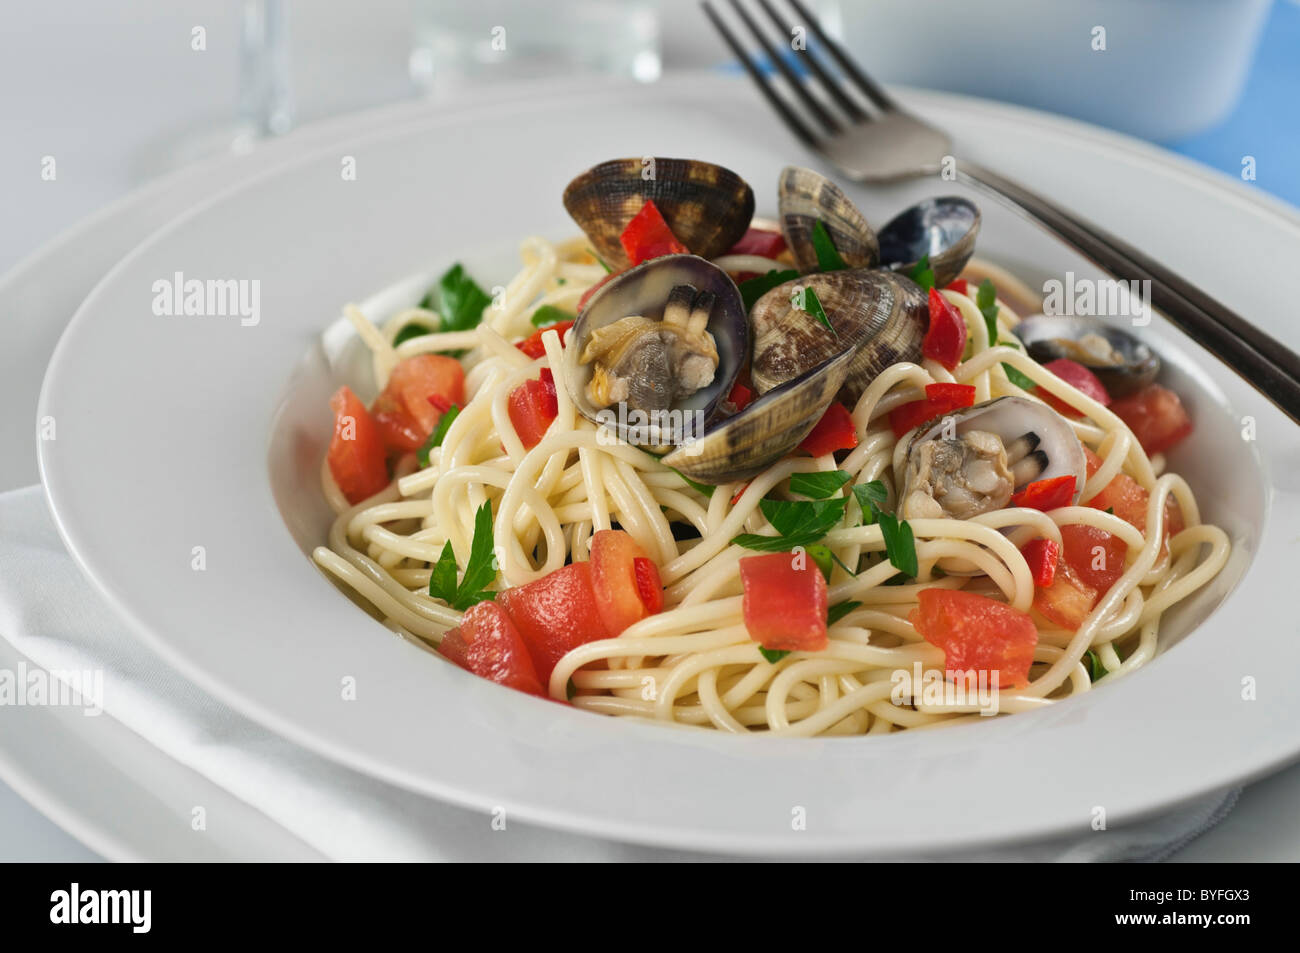 Spaghetti vongole. Pasta with clams - Stock Image